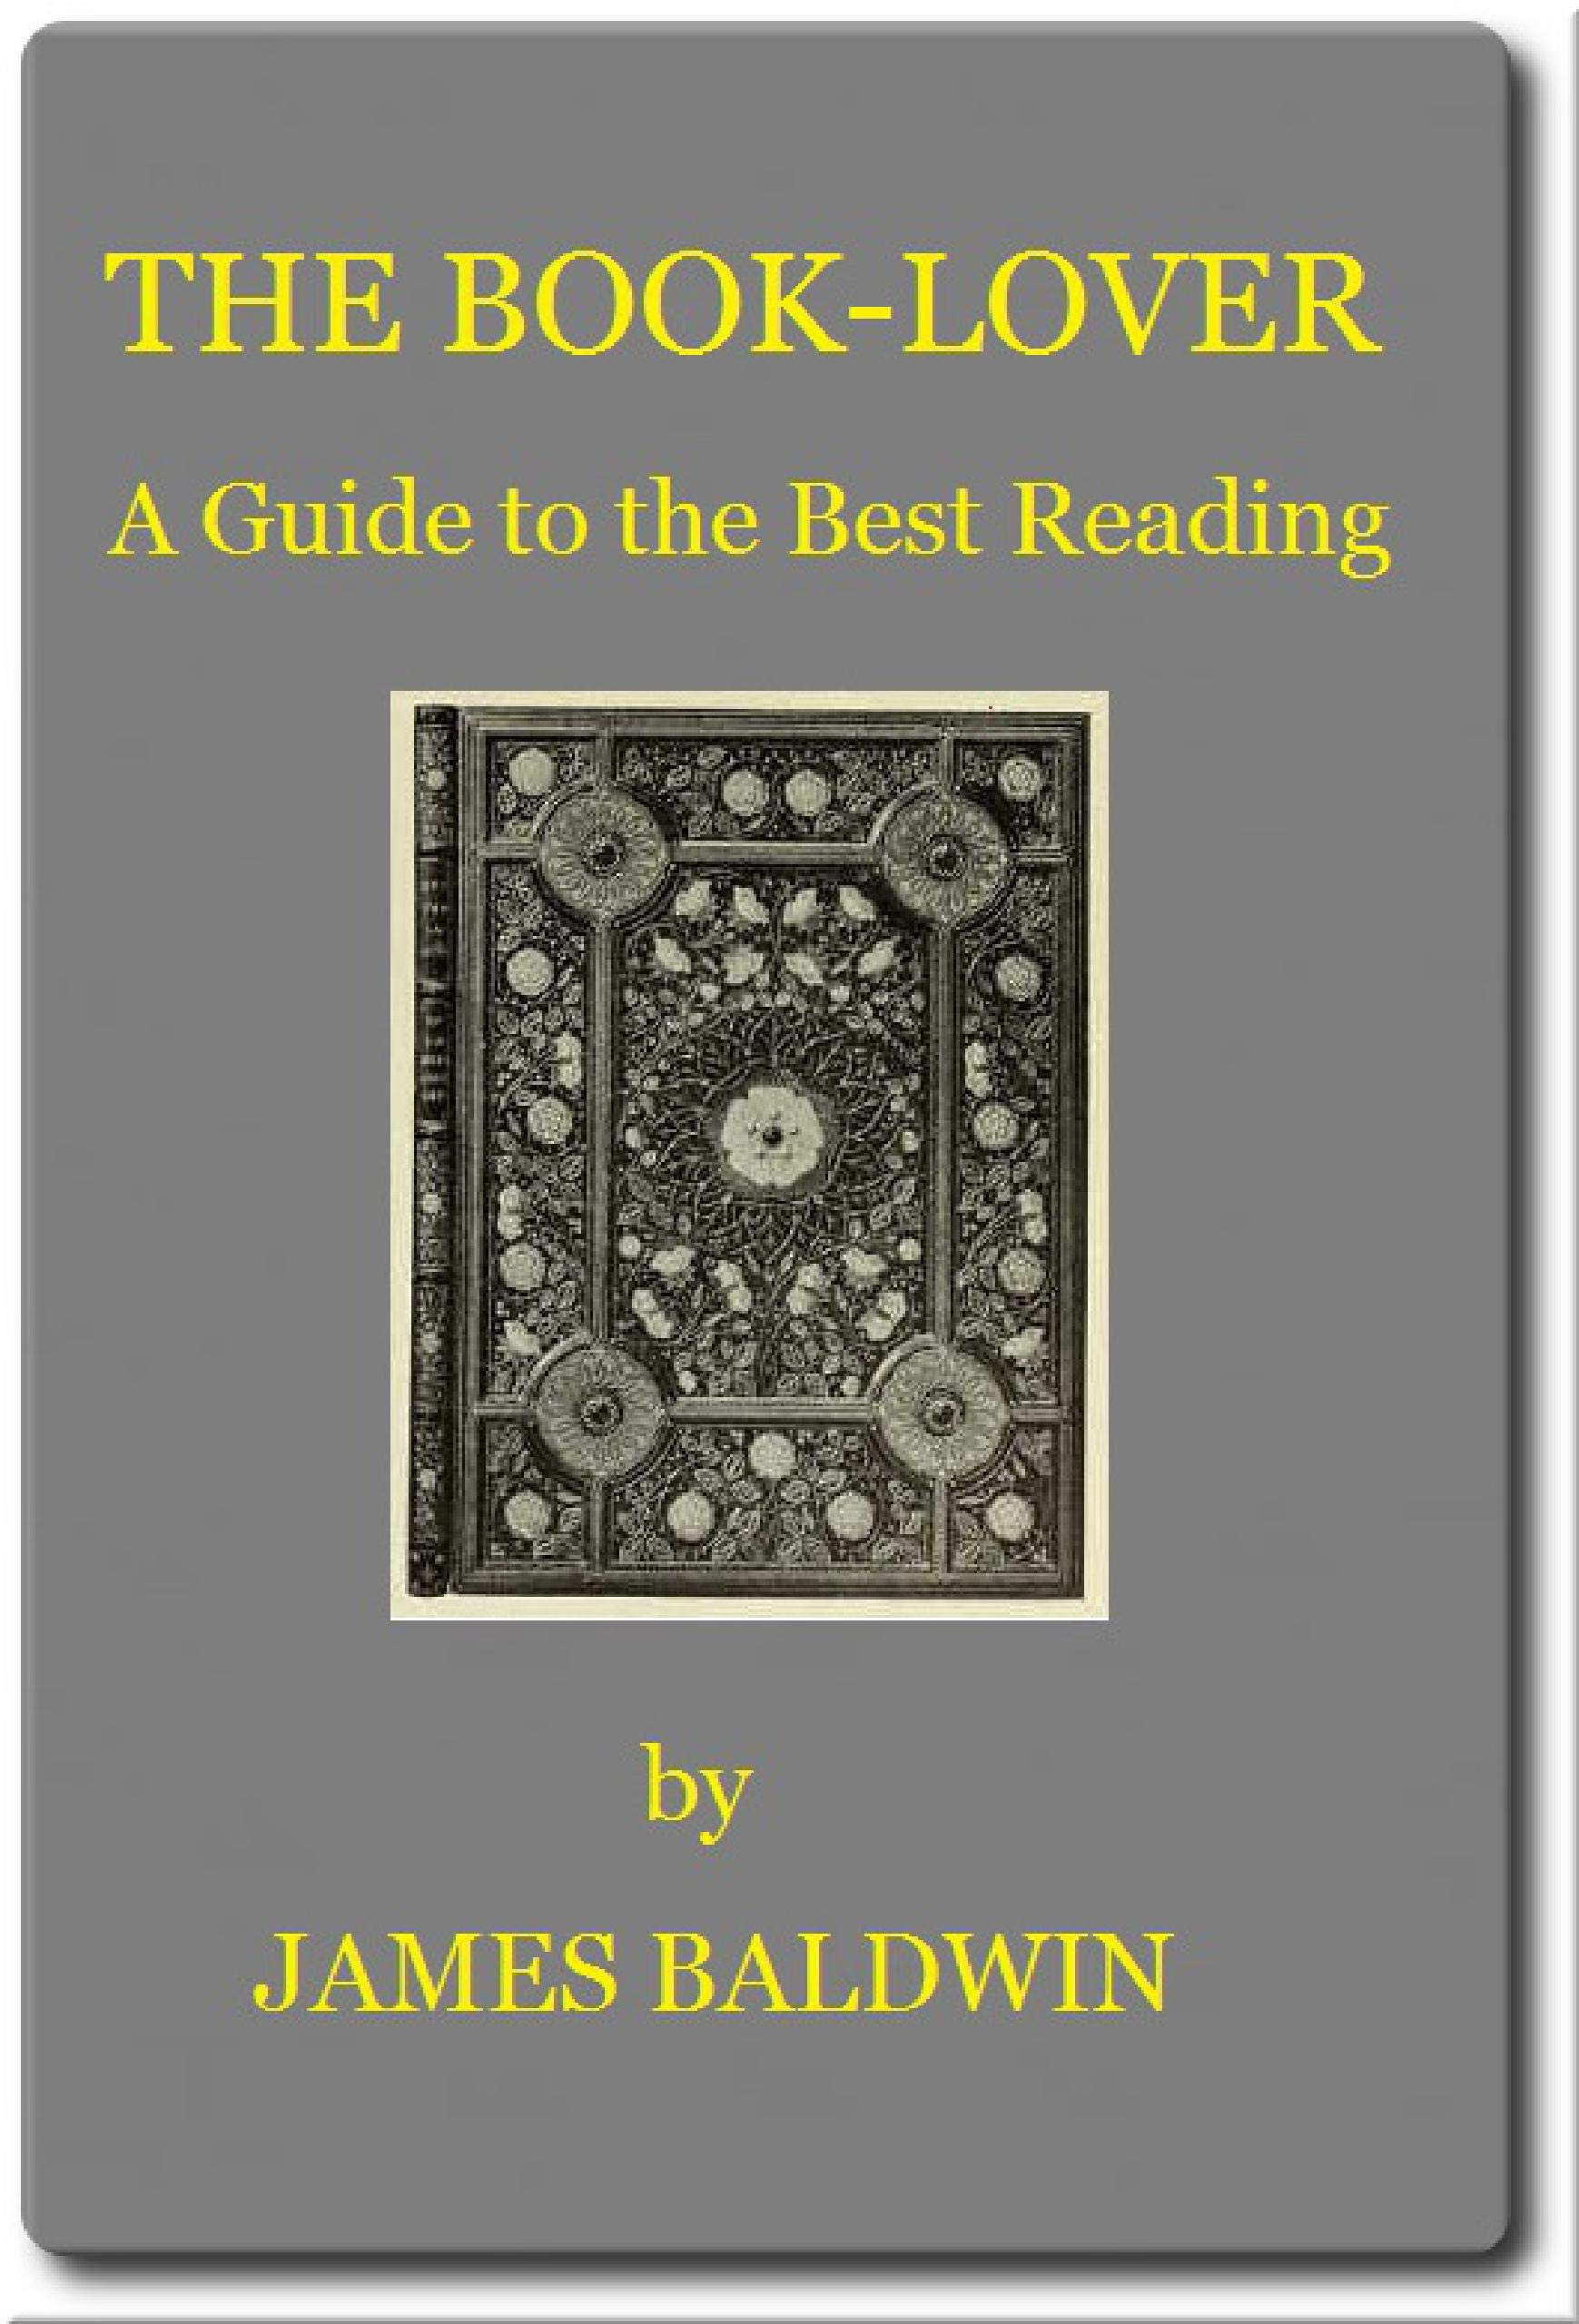 """The Abridged Version of """"The Book-lover"""": A Guide to the Best Reading"""